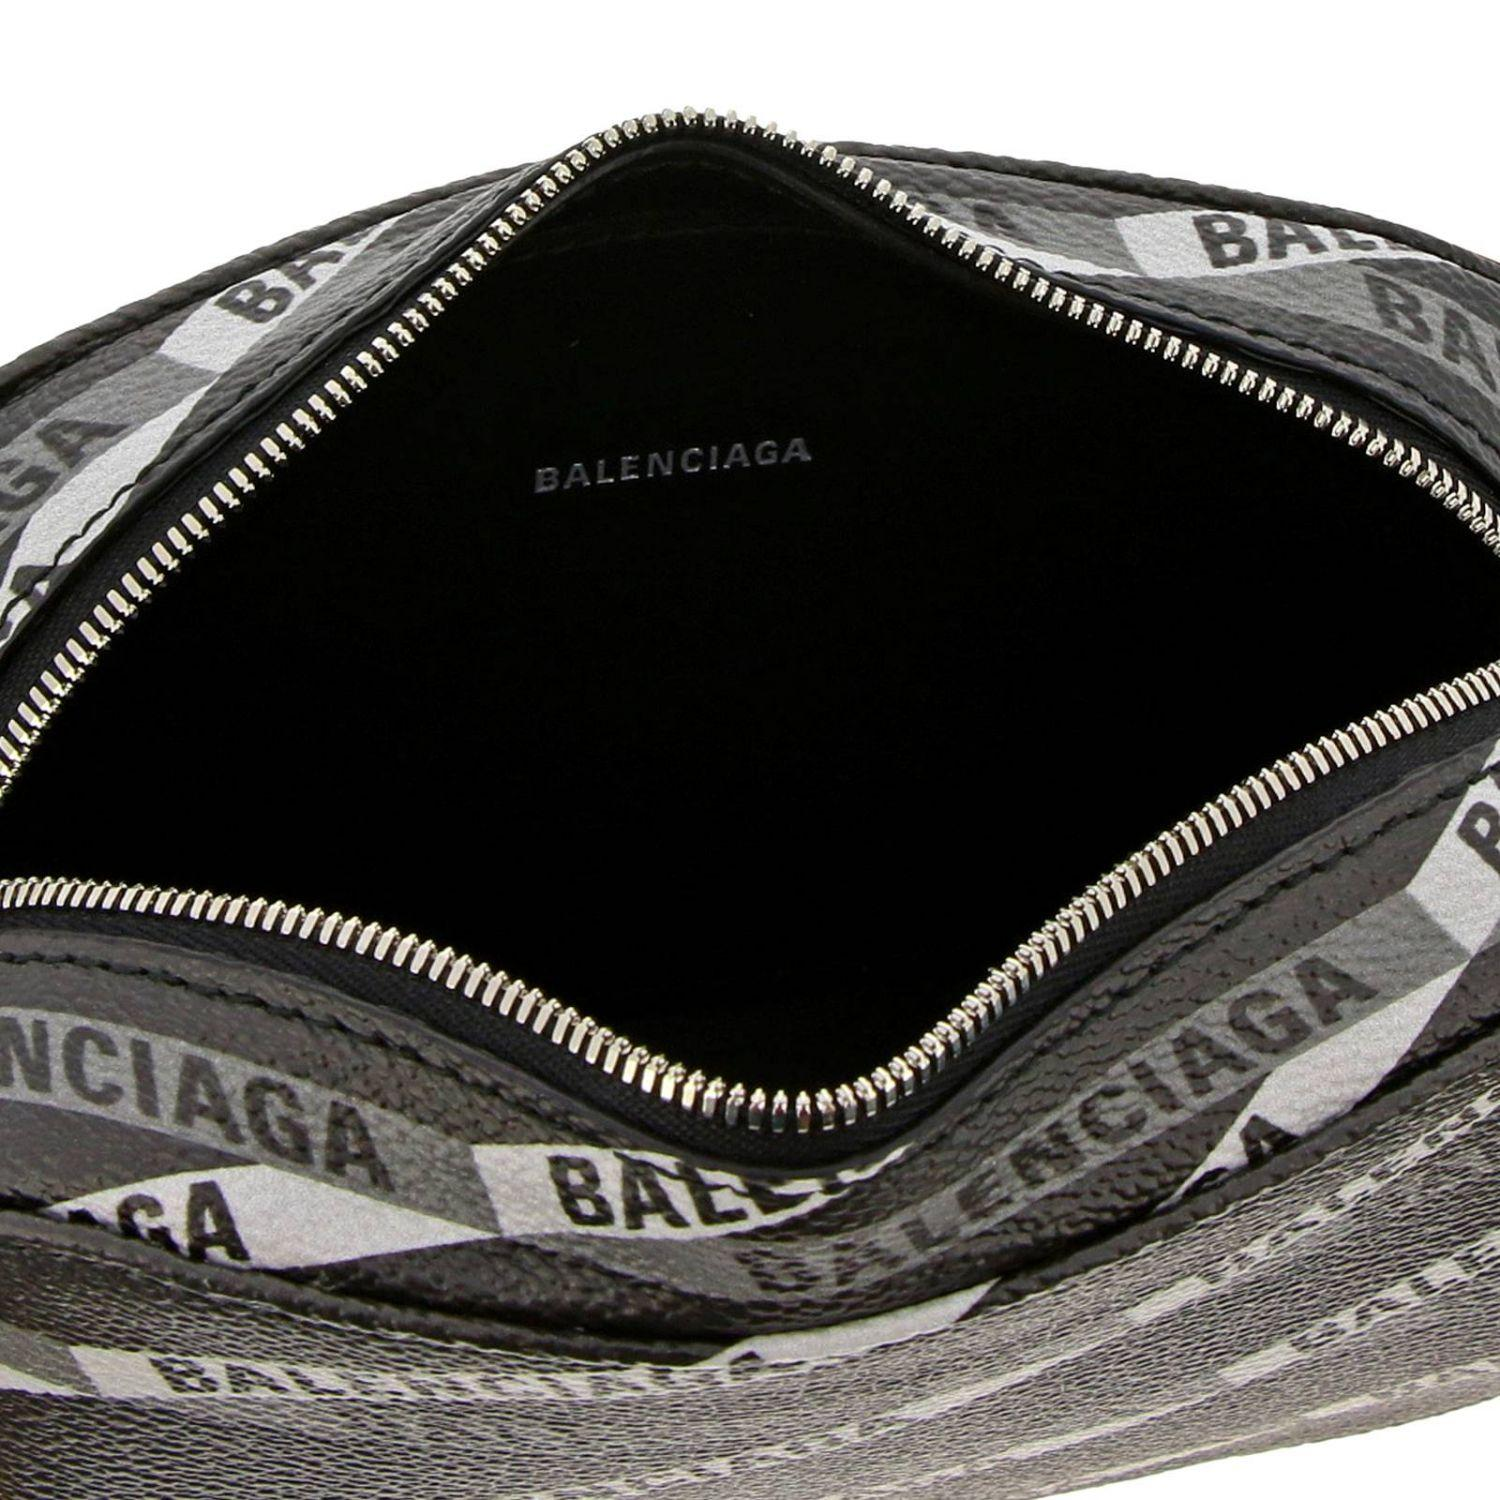 c5dfea4406560 Balenciaga - Black Crossbody Bags Women - Lyst. View fullscreen